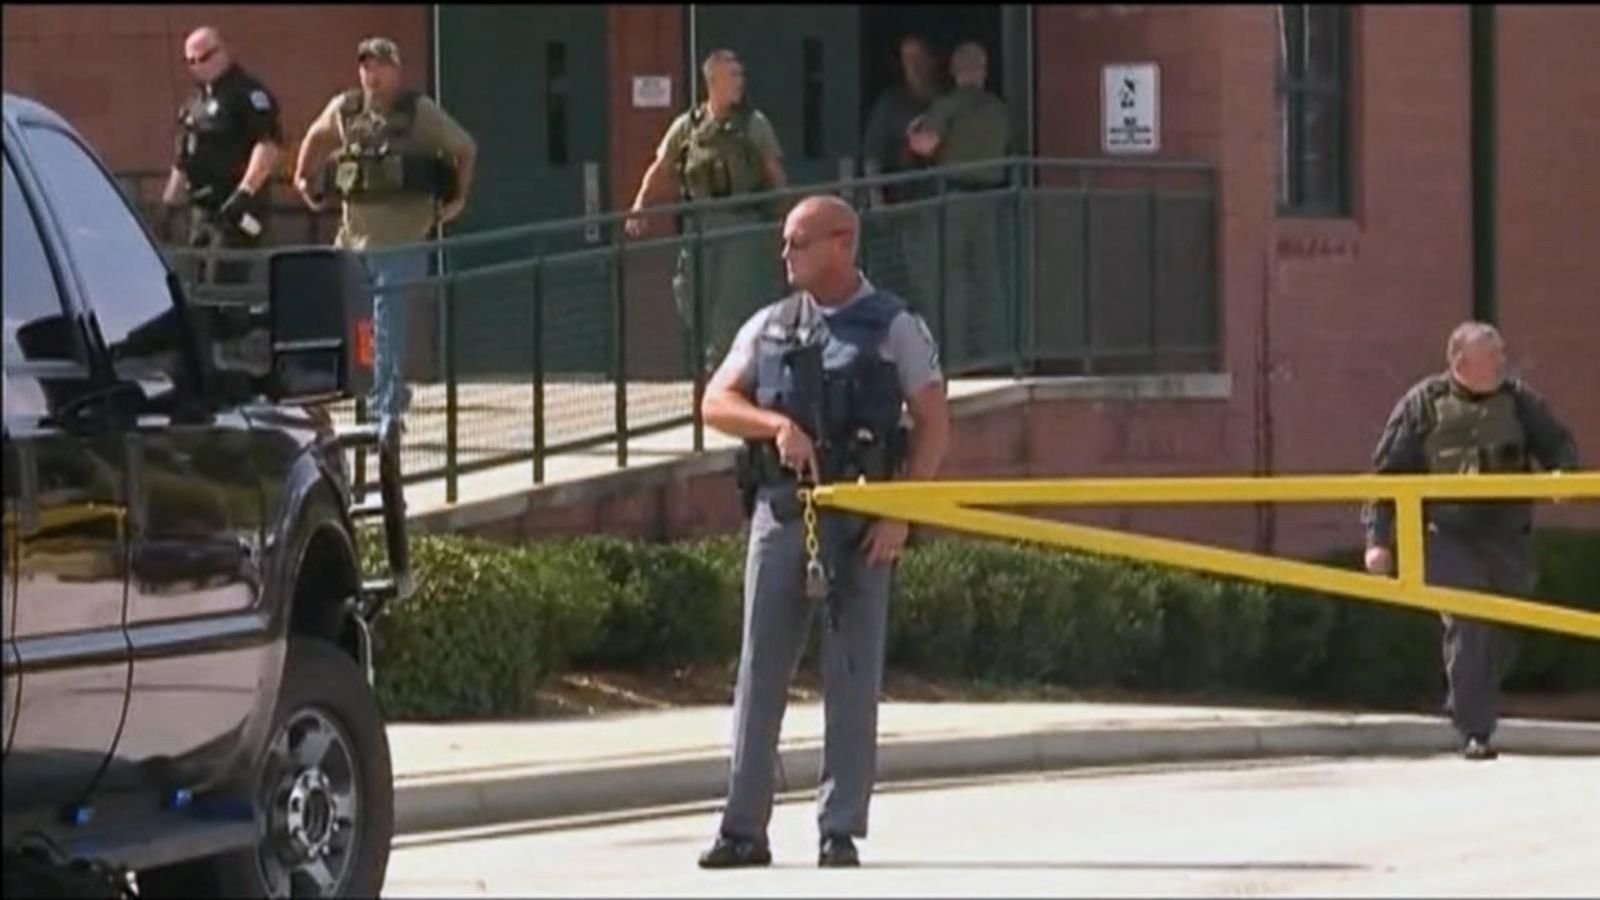 The shooting suspect, a teenager, is in custody, police said.